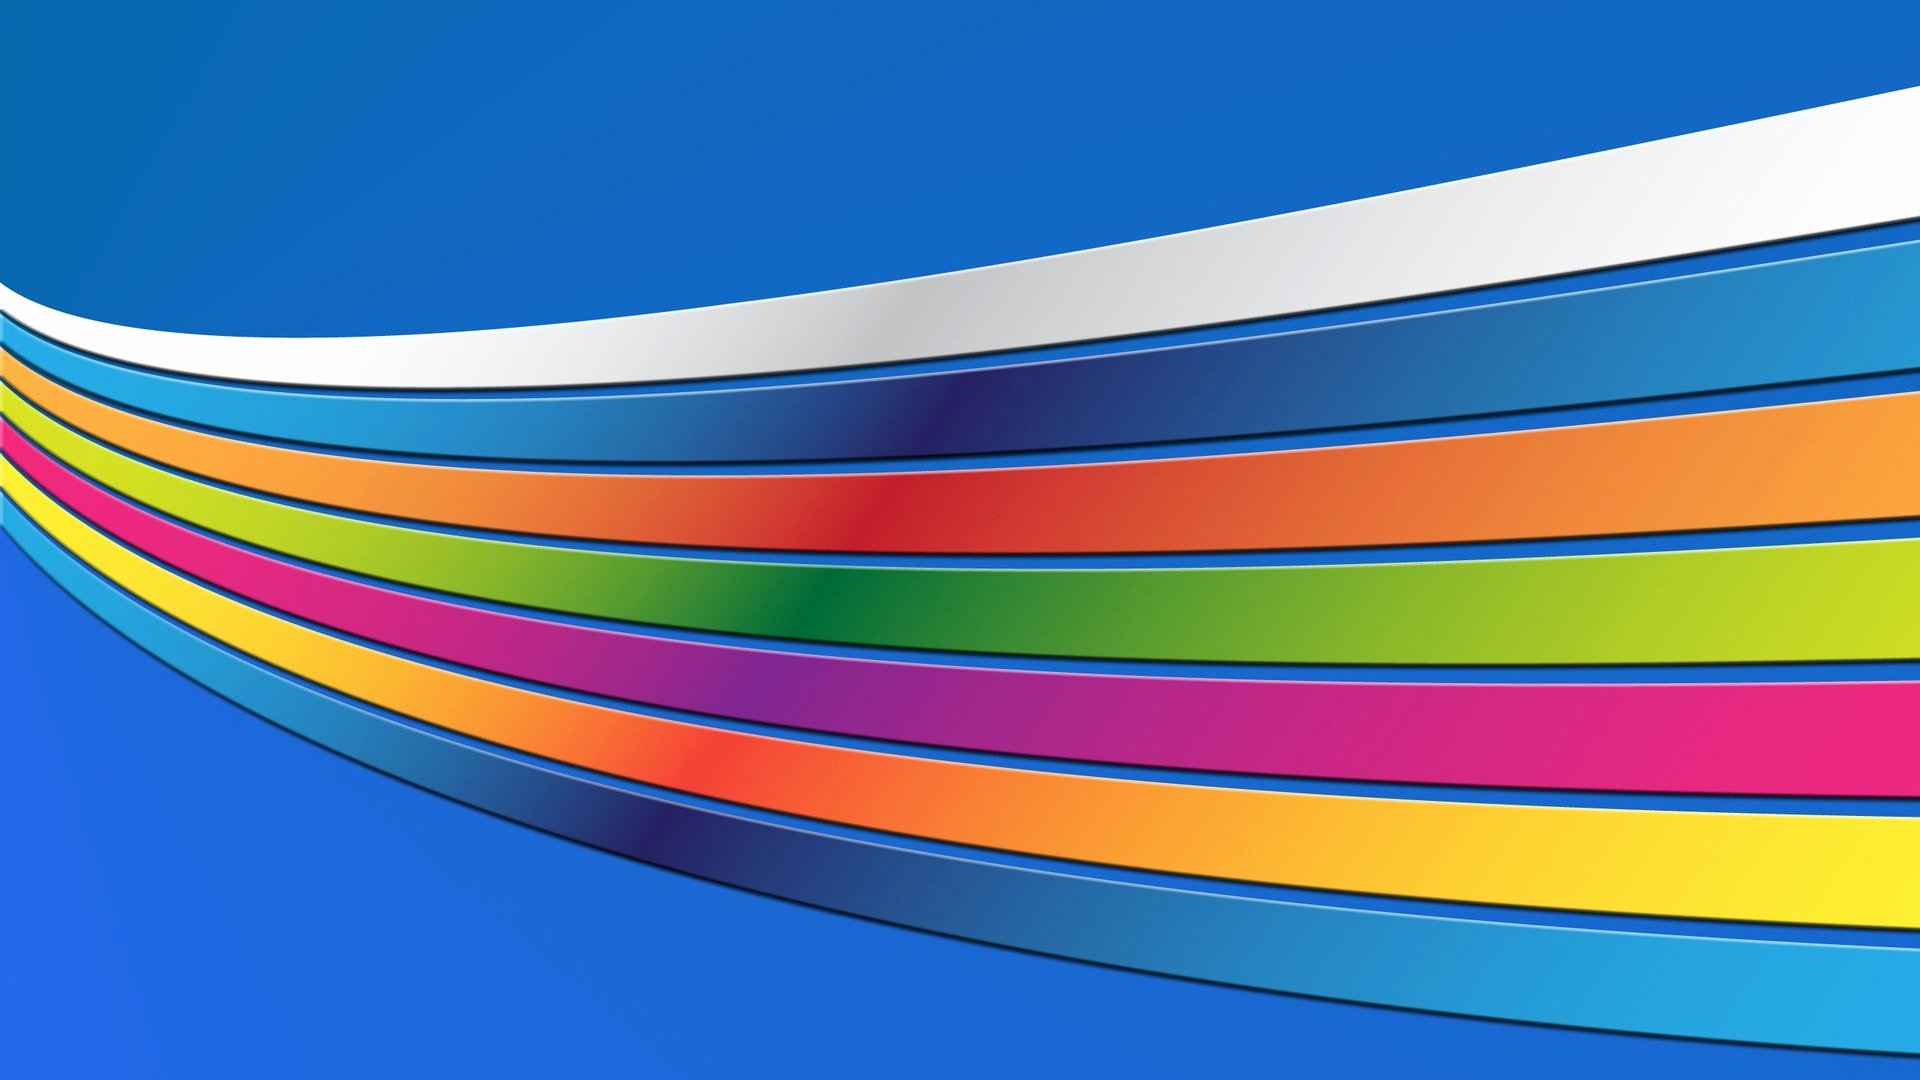 Free Moving Backgrounds for Powerpoint Monpence